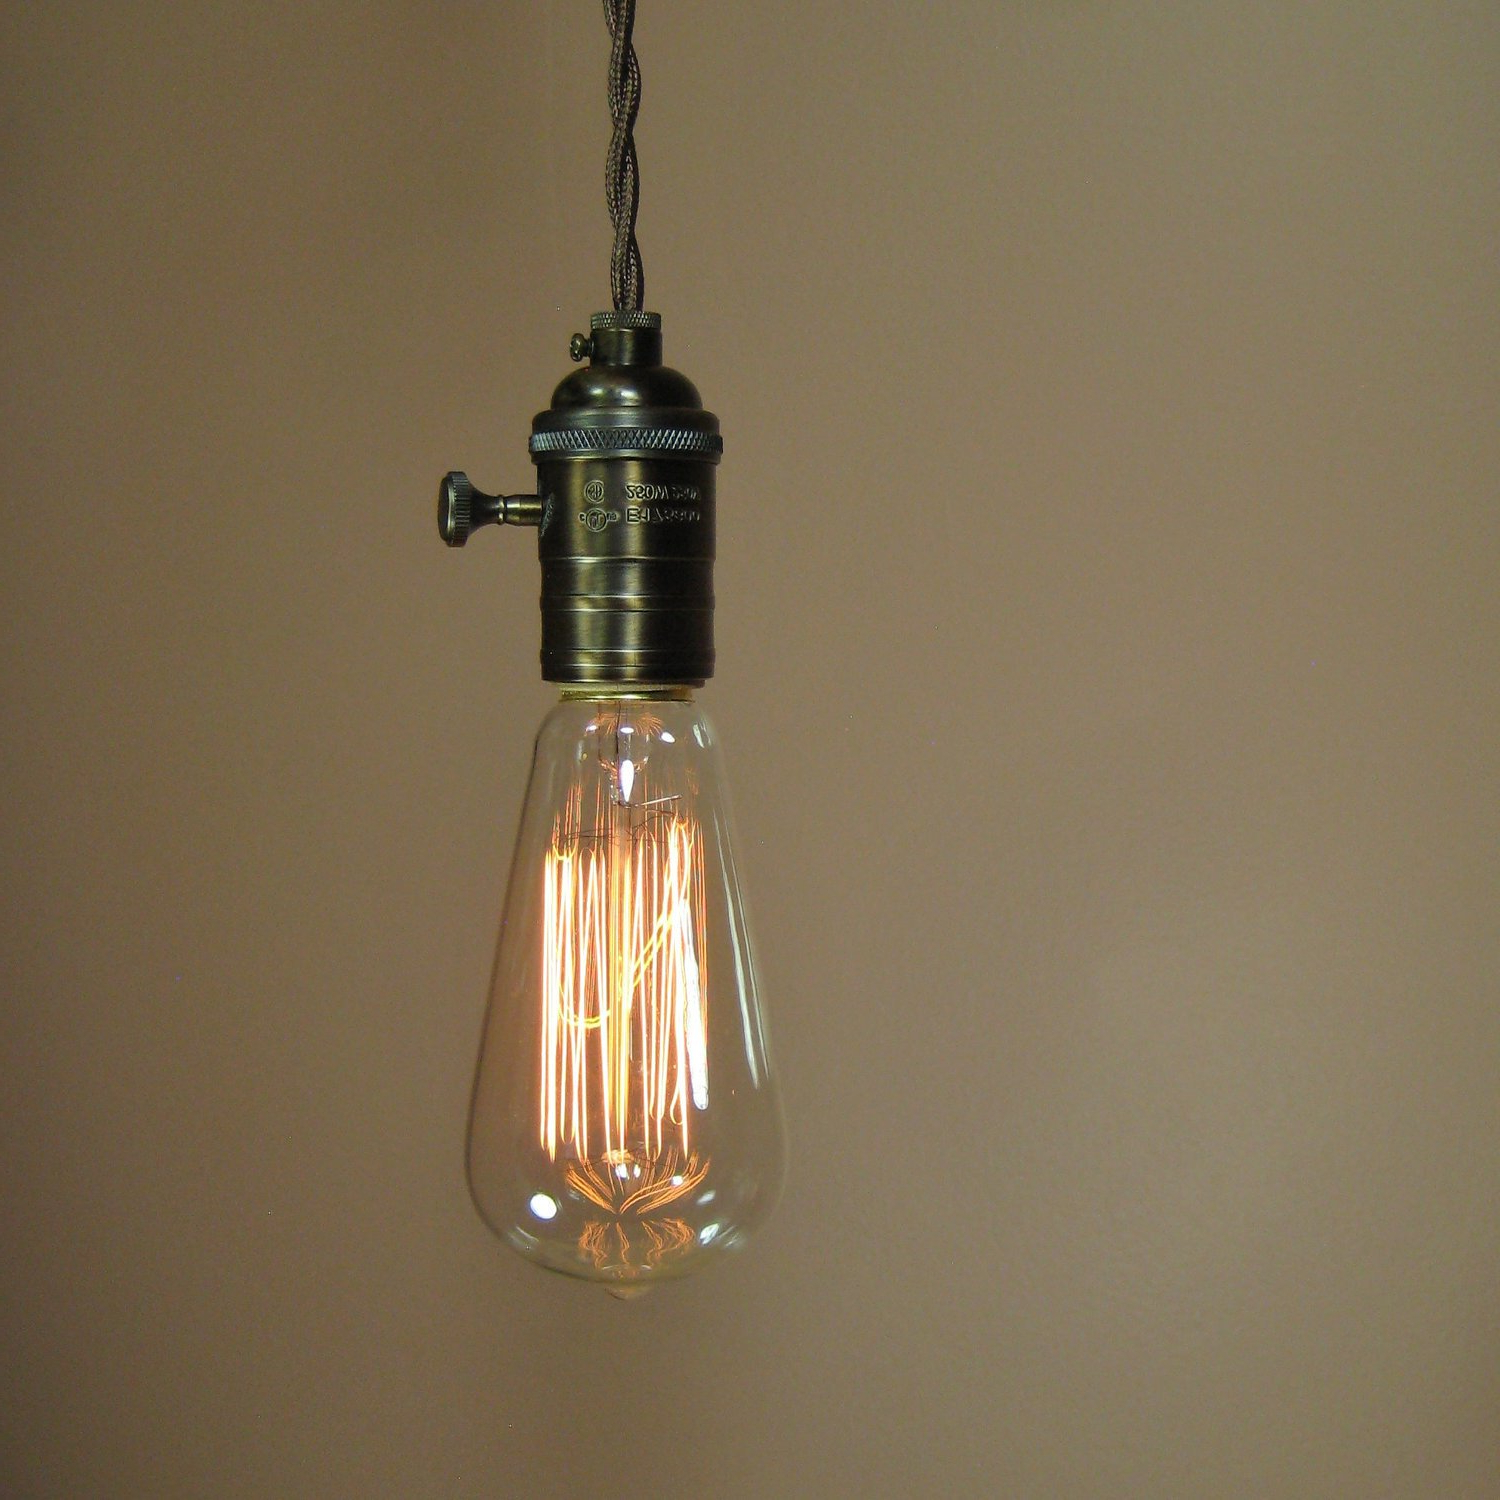 Current Reserved For Henry Rustic Bare Bulb Pendant Light With With Regard To Vintage Edison 1 Light Bowl Pendants (View 4 of 25)